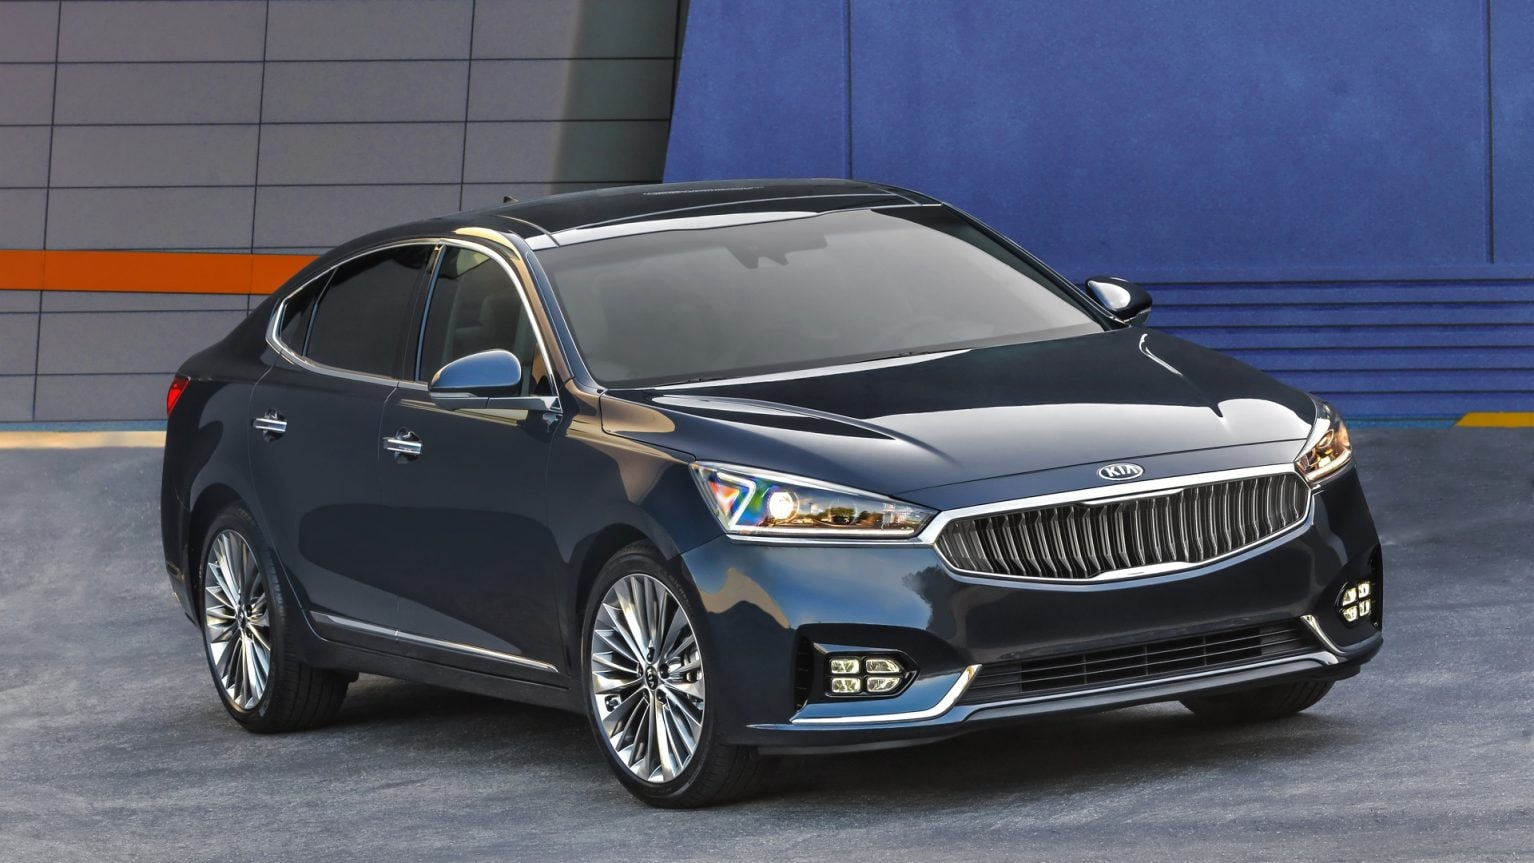 2019 Kia Cadenza Luxury Sedan